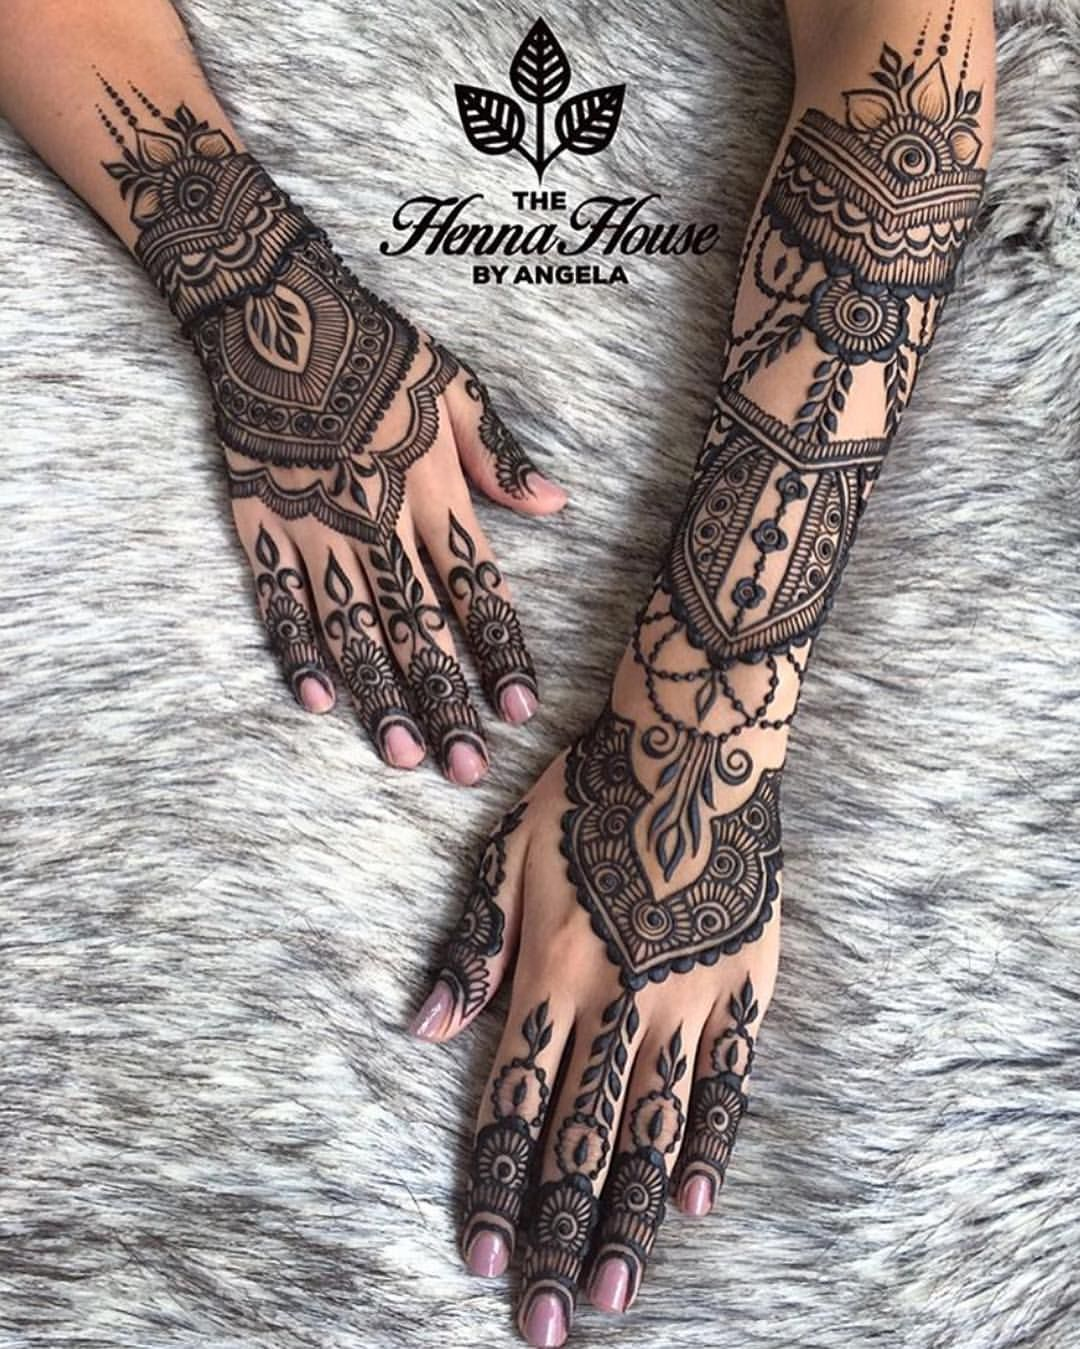 Beautiful Henna Tattoo Designs For Your Wrist: Pin By Mithi Mishra On Mehendi Art !!! Must For All The